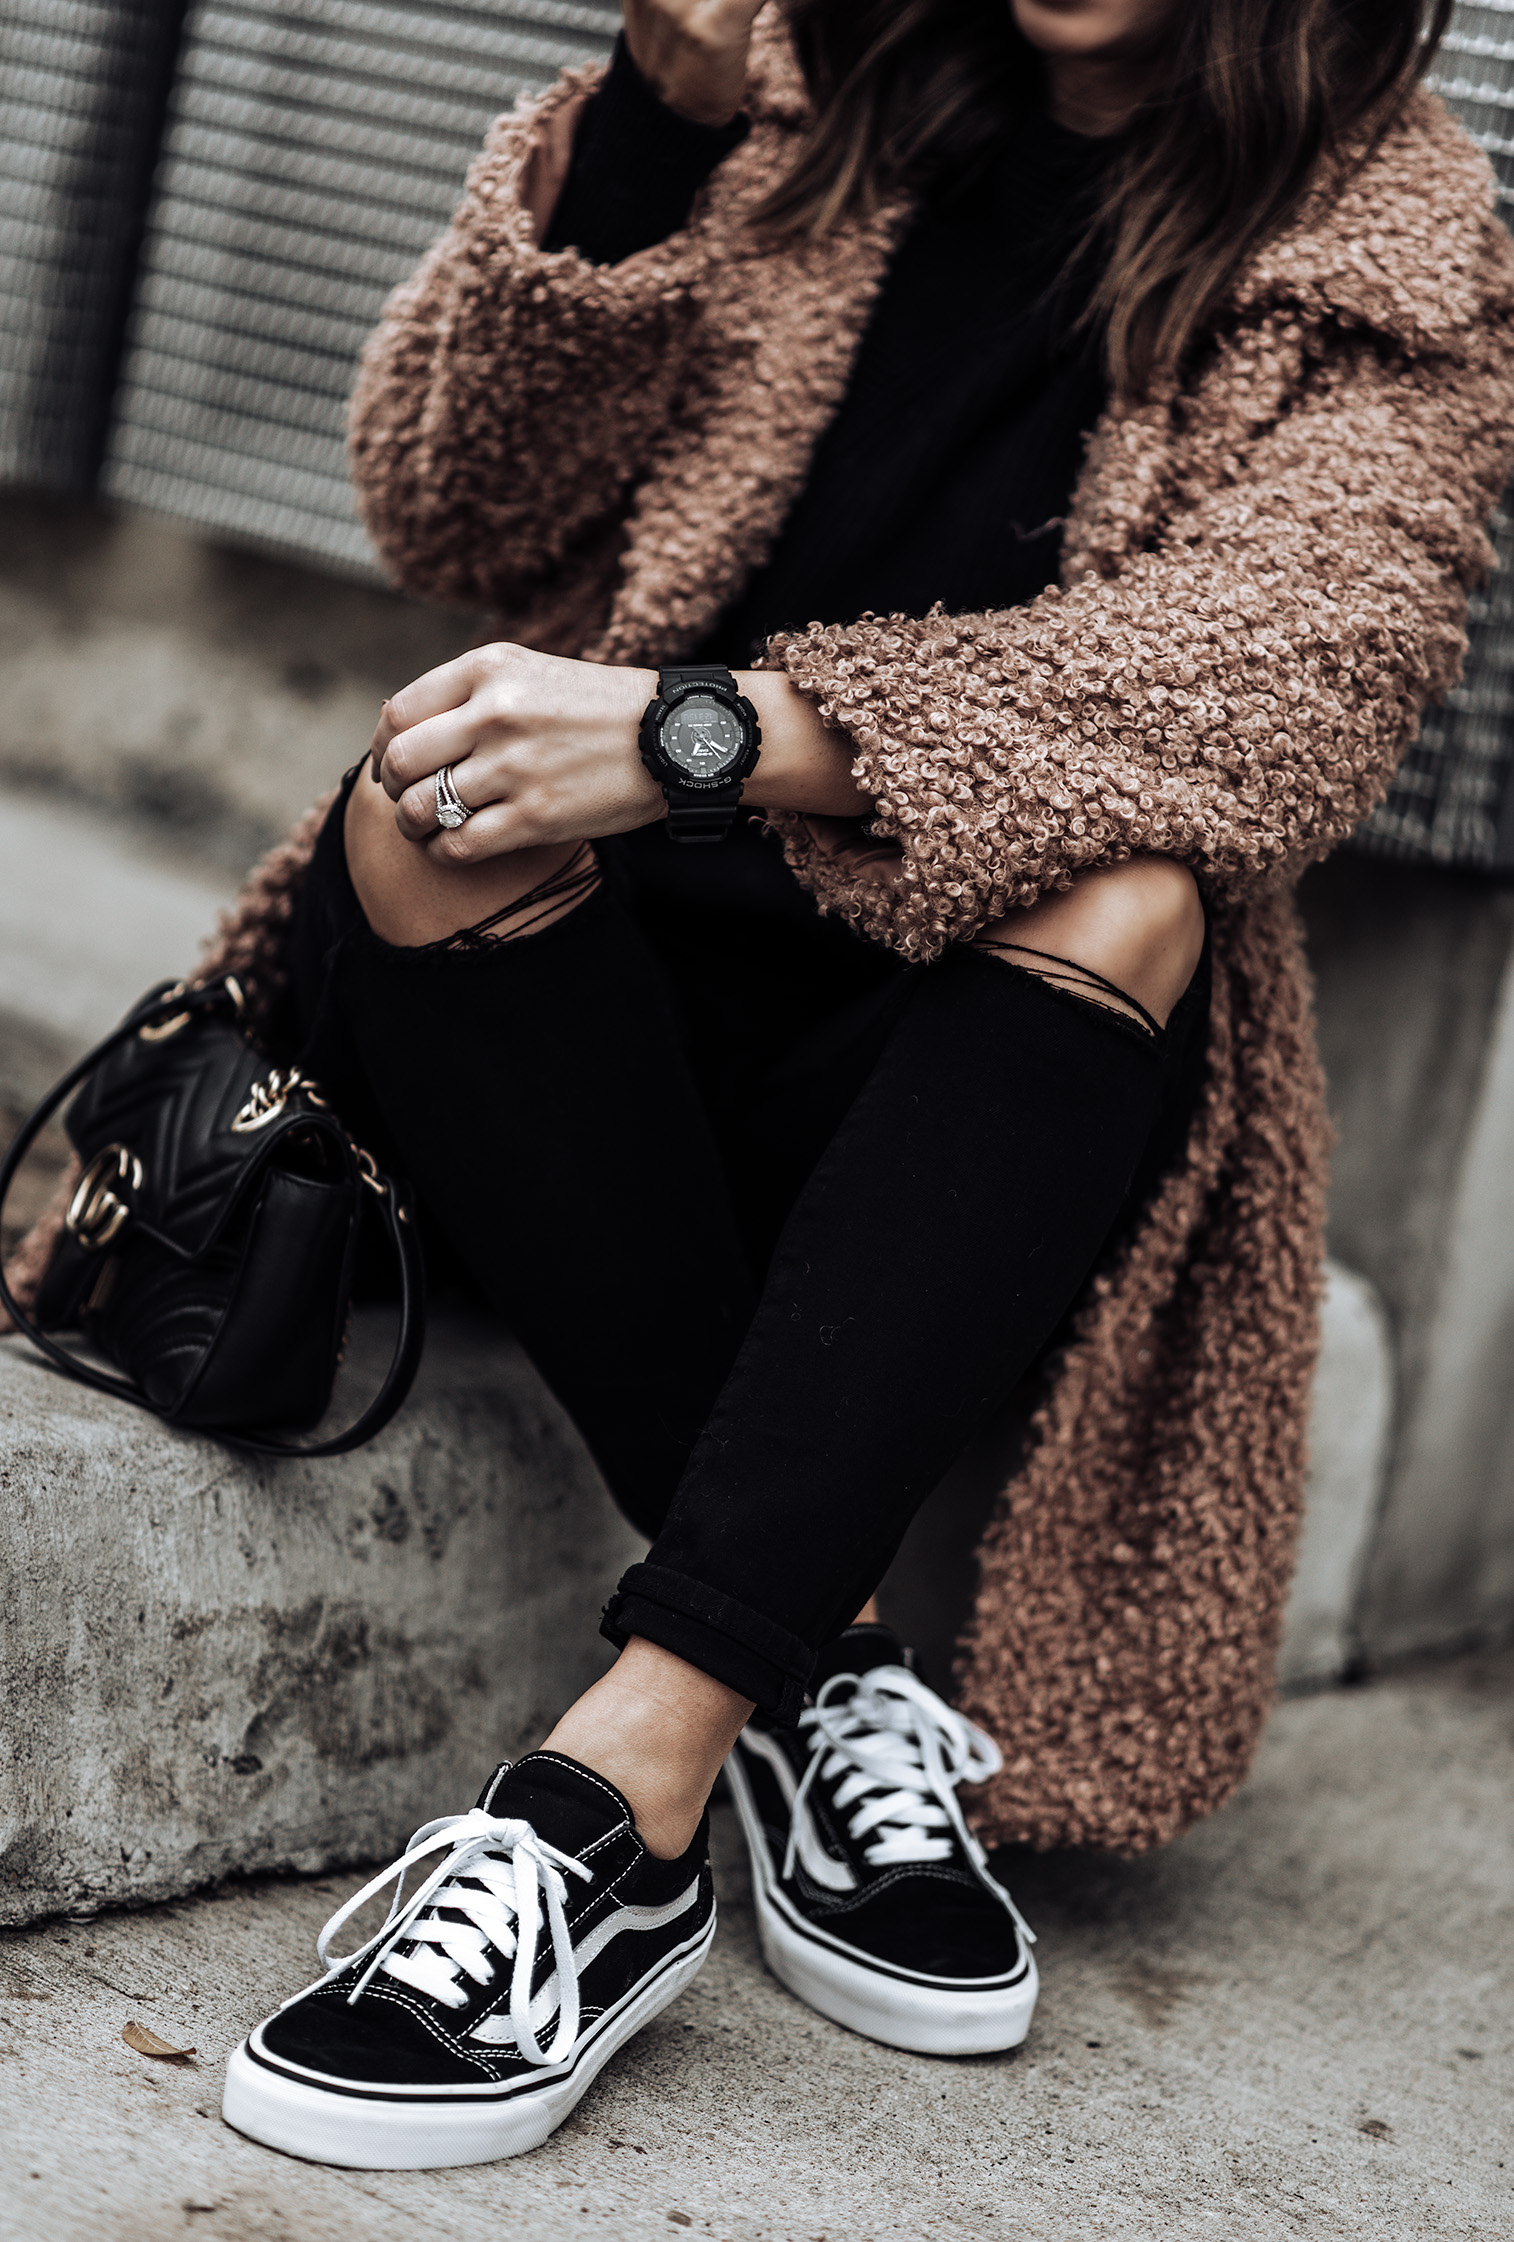 Tiffany Jais fashion and lifestyle blogger of Flaunt and Center | Houston fashion blogger | Teddy Coat | Streetstyle blog Teddy coat (similar) | G Shock Watch|Lovers + Friends Mason High-Rise Skinny Jeans | Vans Old Skool Sneakers | Gucci marmot Bag |